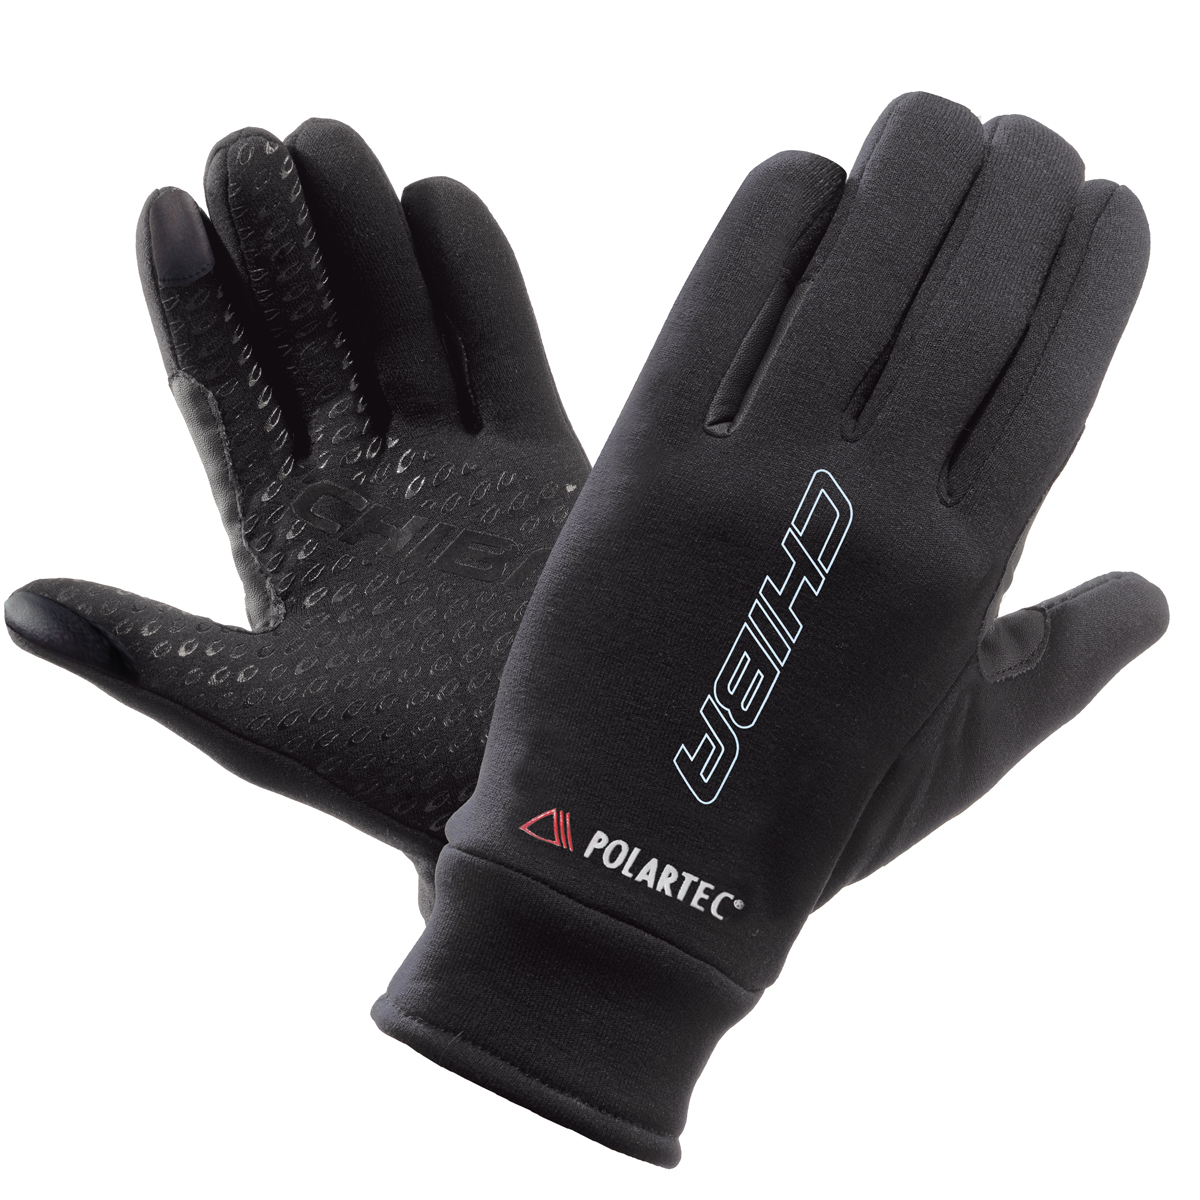 Chiba Cycle Clothing > Gloves & Mitts Chiba Polartec Fleece Glove